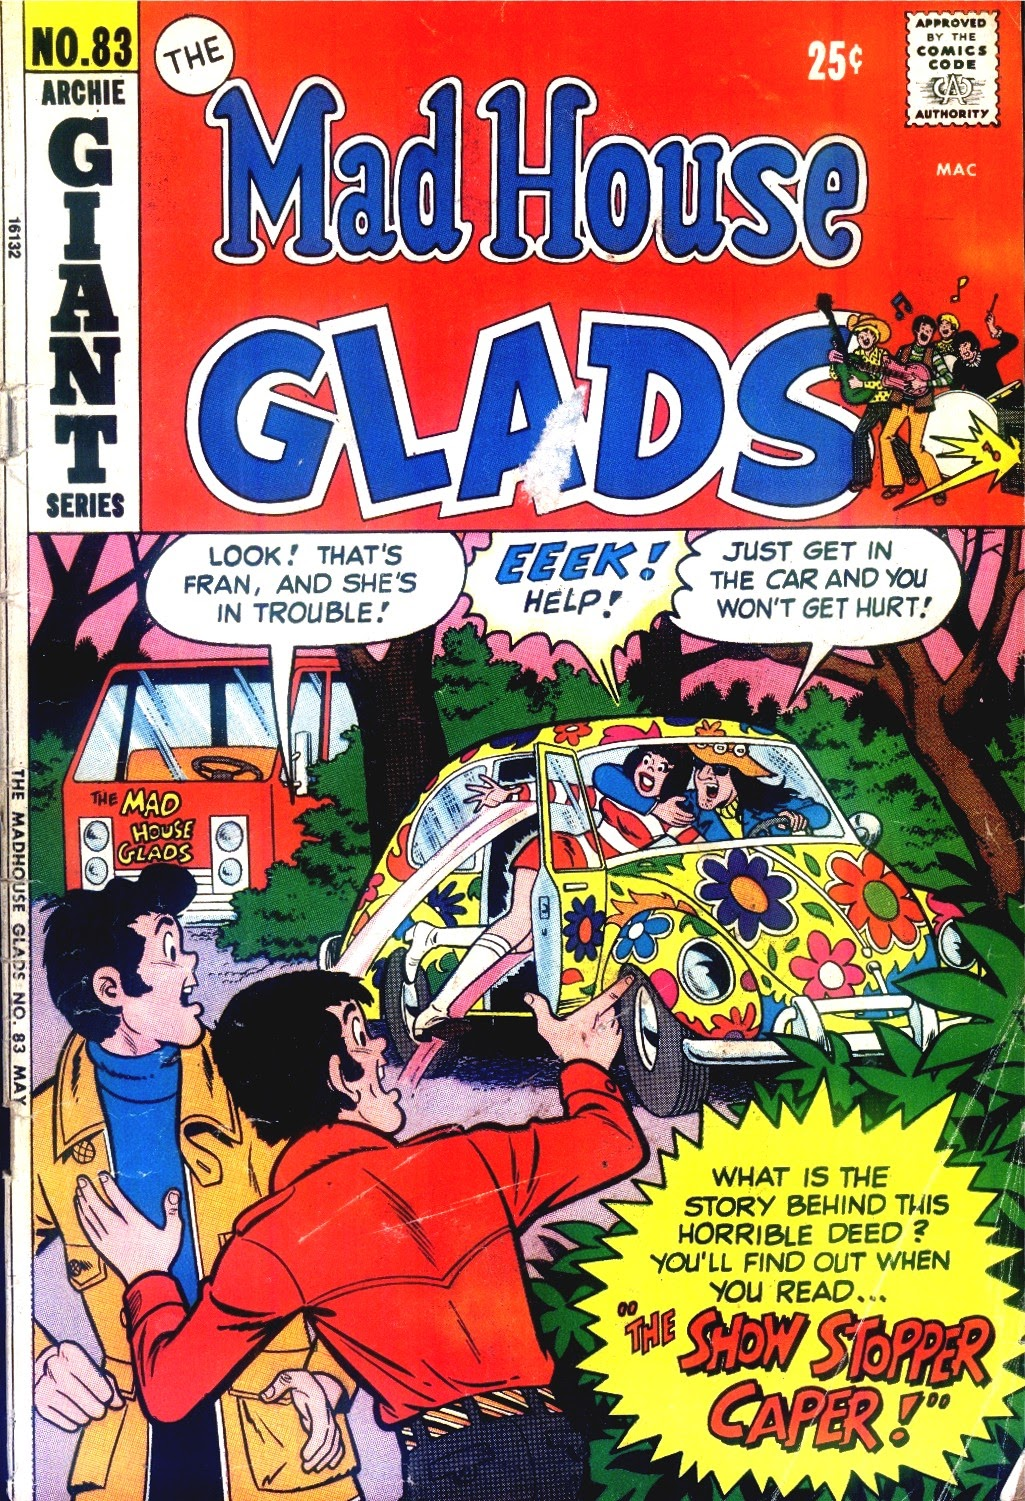 Read online The Mad House Glads comic -  Issue #83 - 1